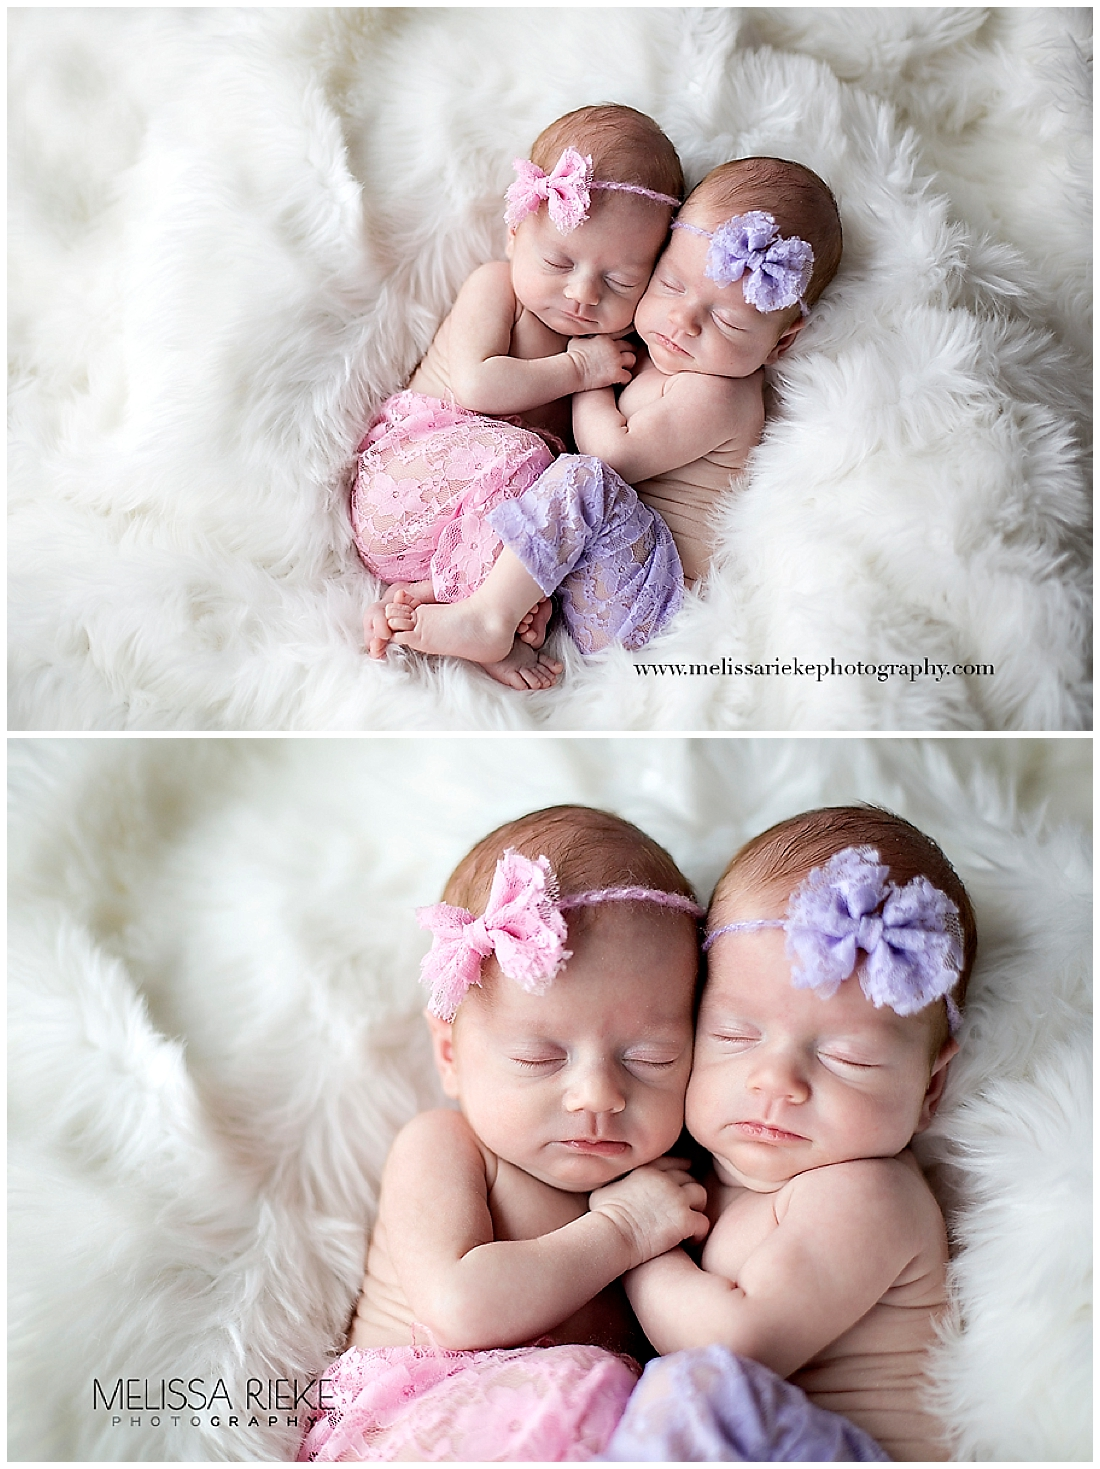 Twin newborn baby girl photos kansas city melissa rieke photography